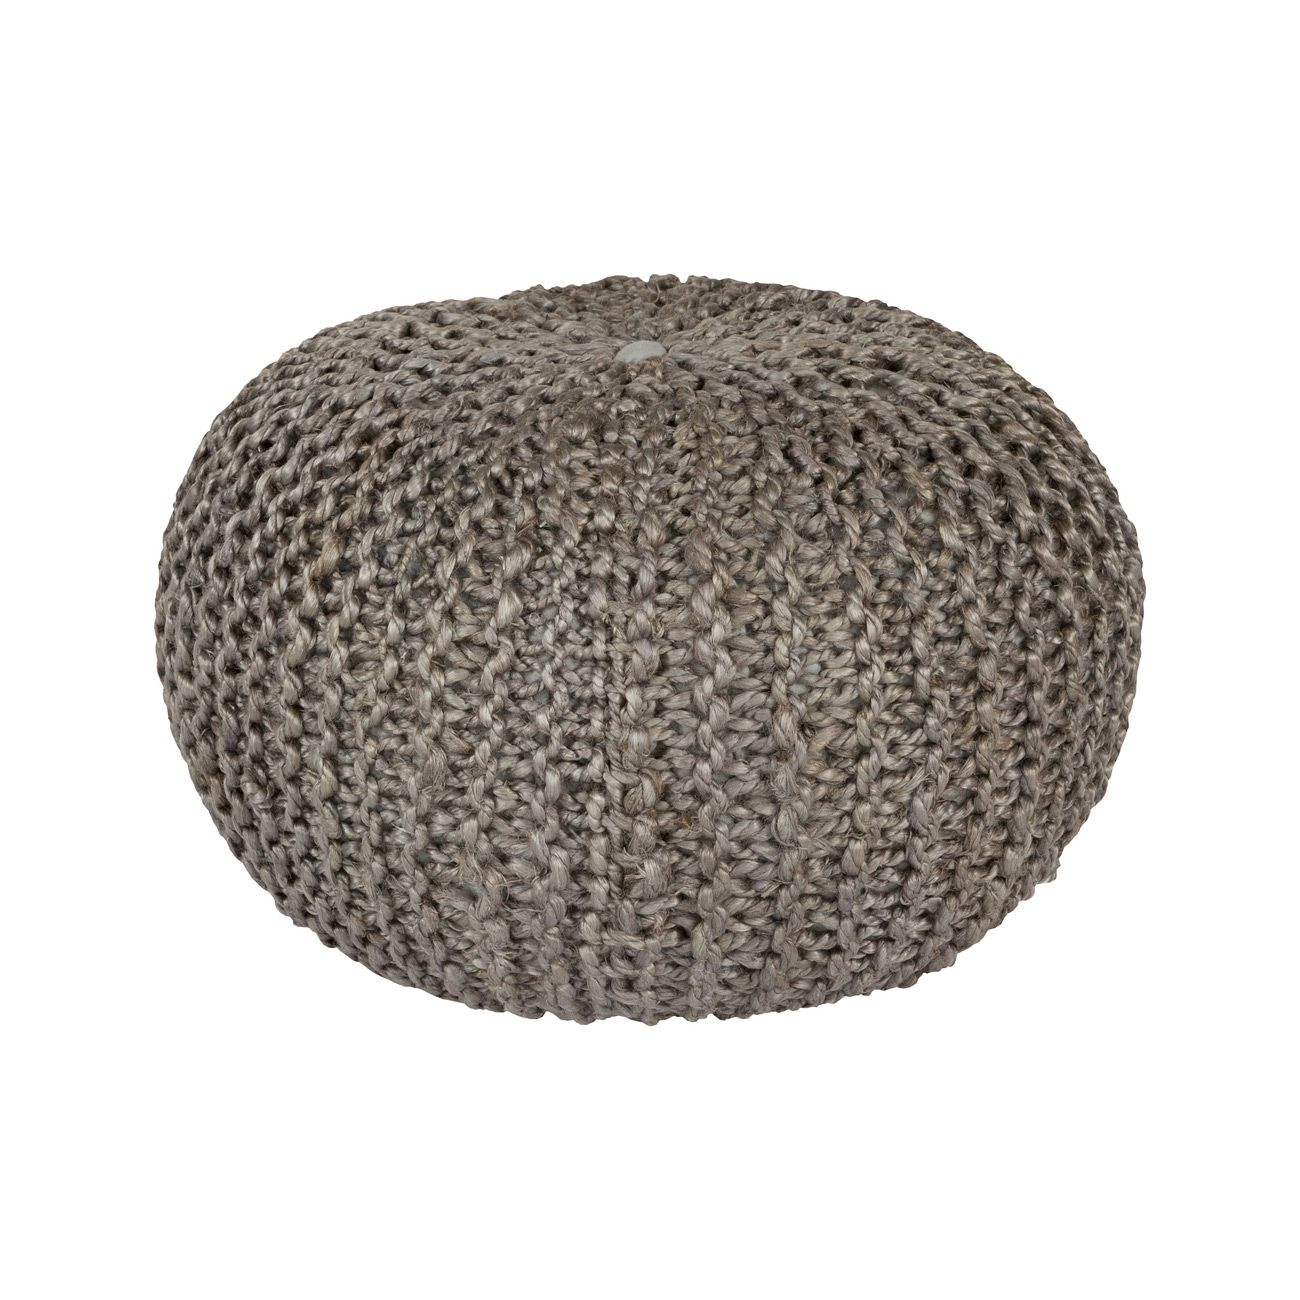 Furniture And Decor For The Modern Lifestyle Decor Pouf Ottoman